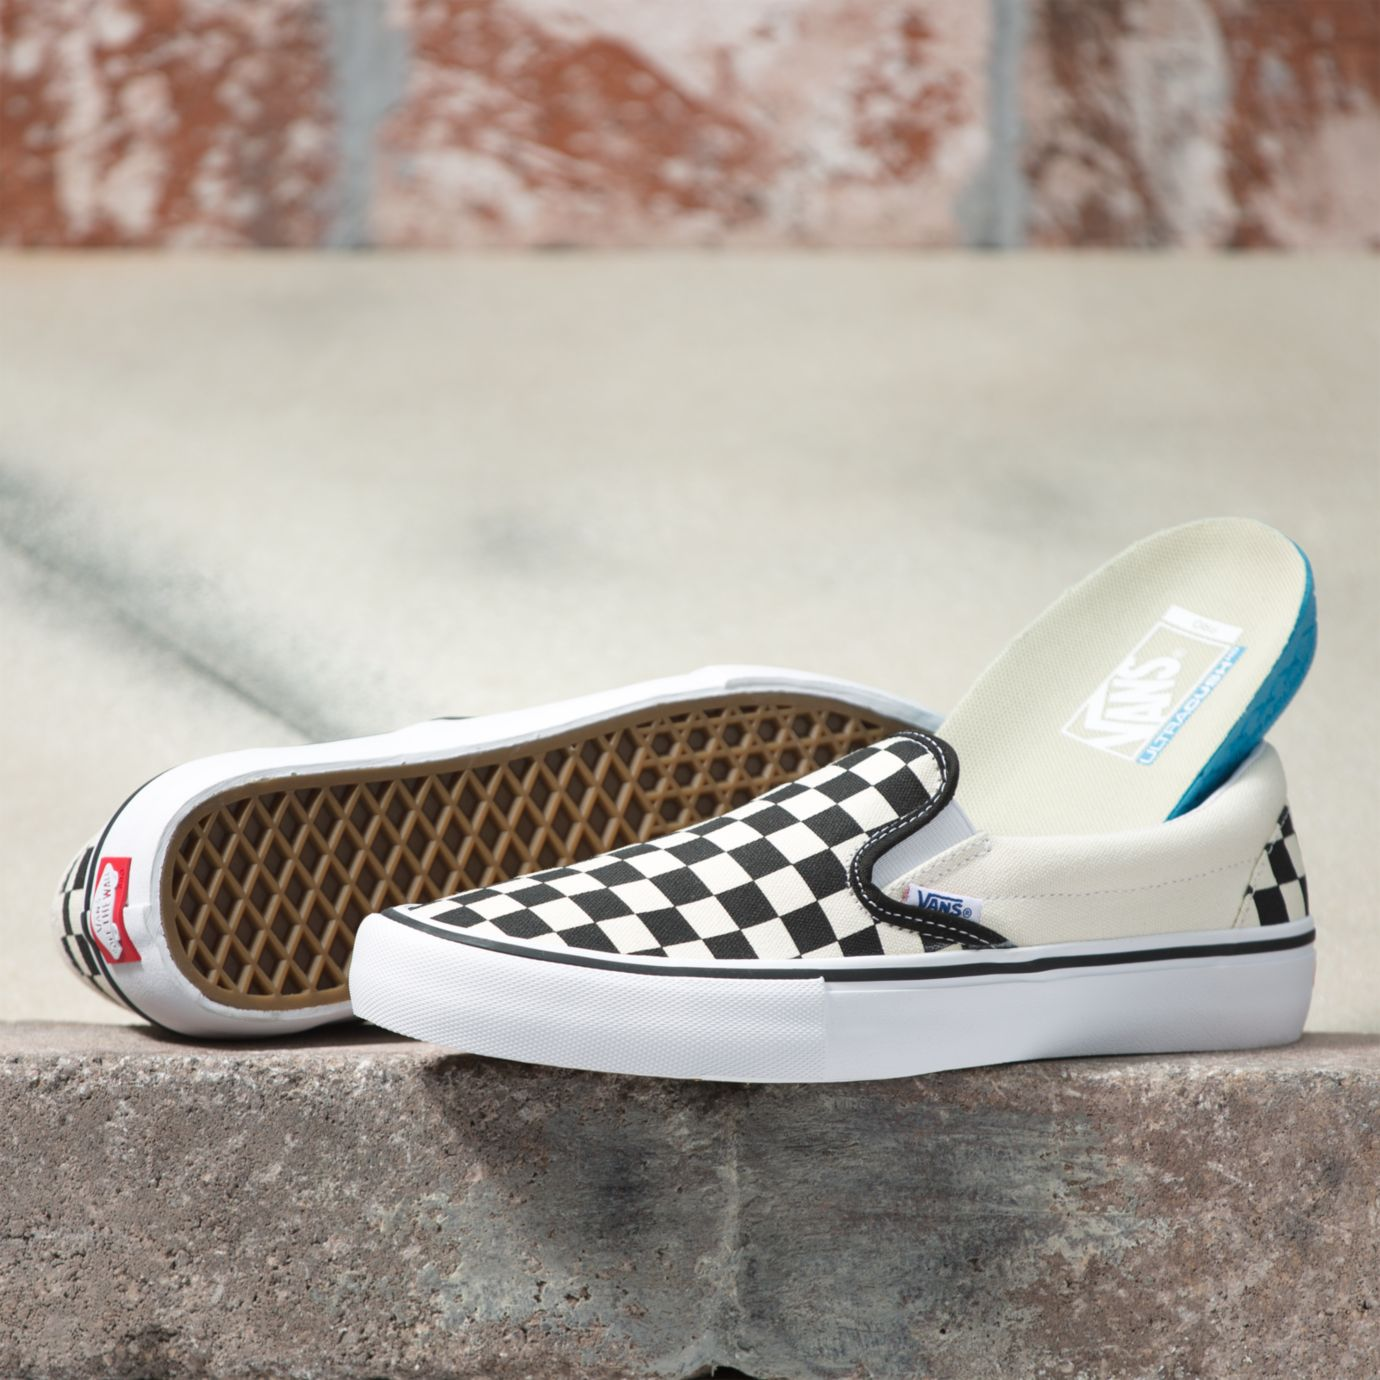 832d6ee68be Vans and DEFCON Resurrect the Sk8-Hi Notchback Pro